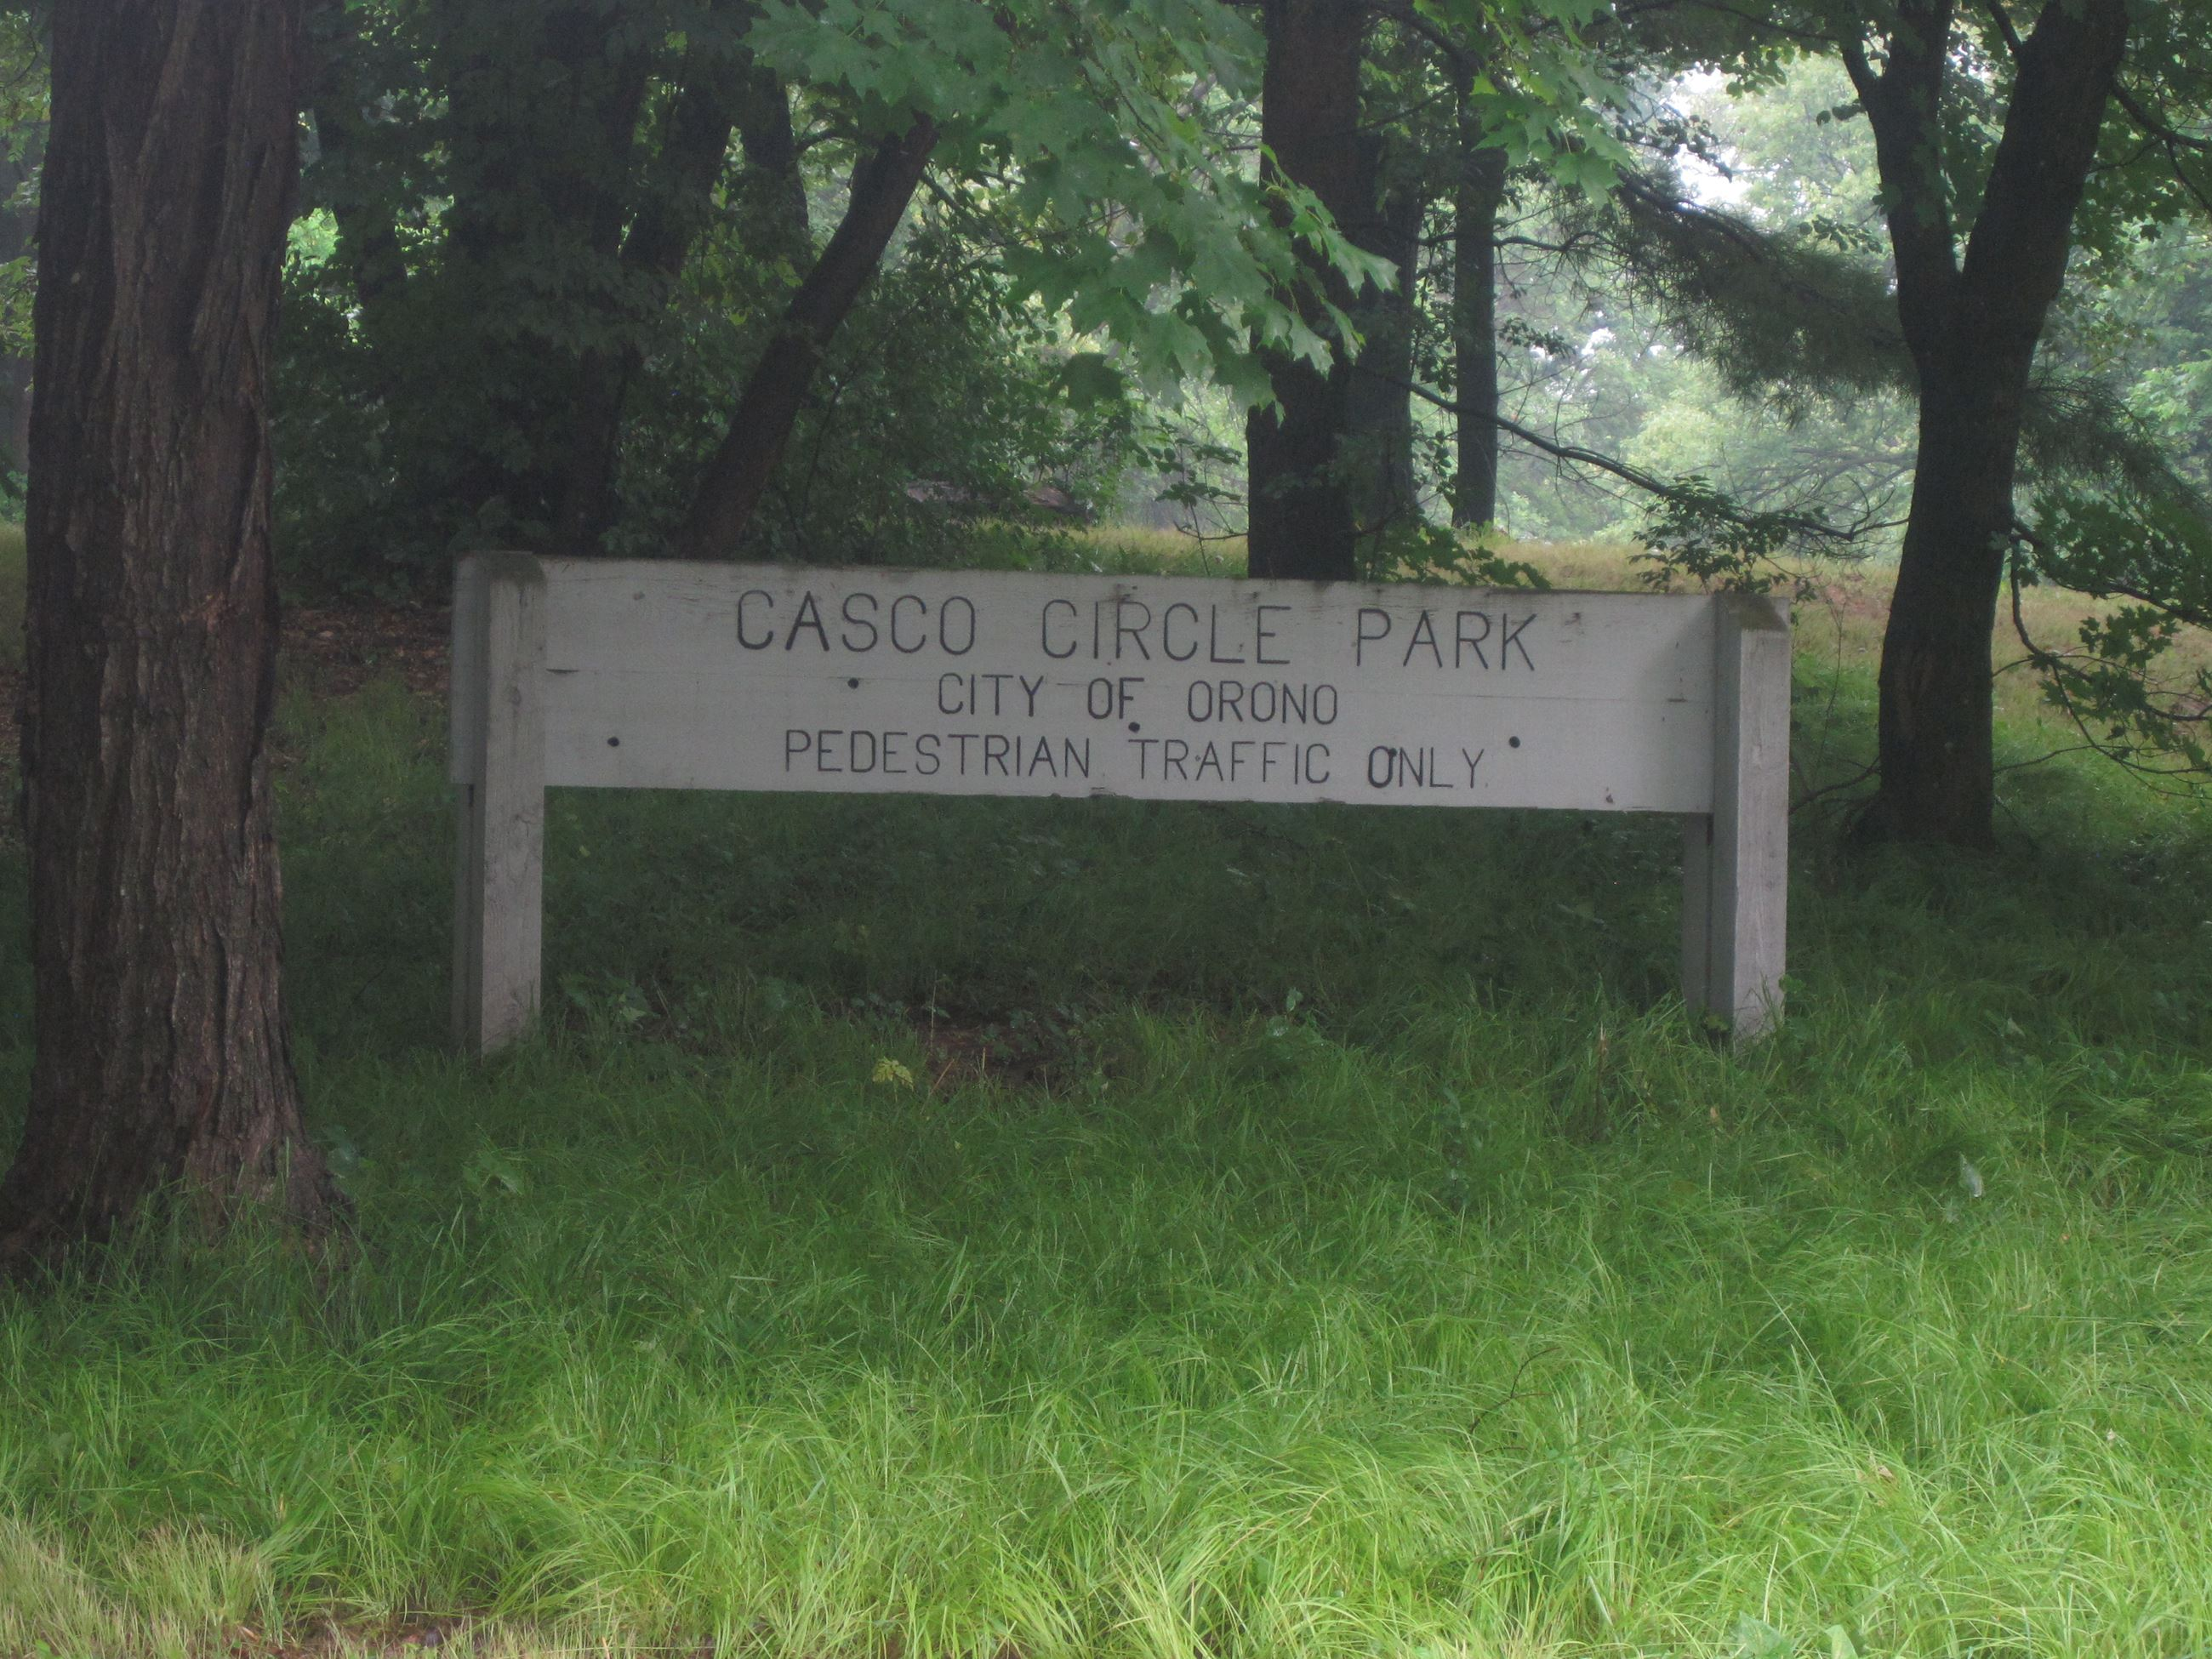 Casco Circle Park sign